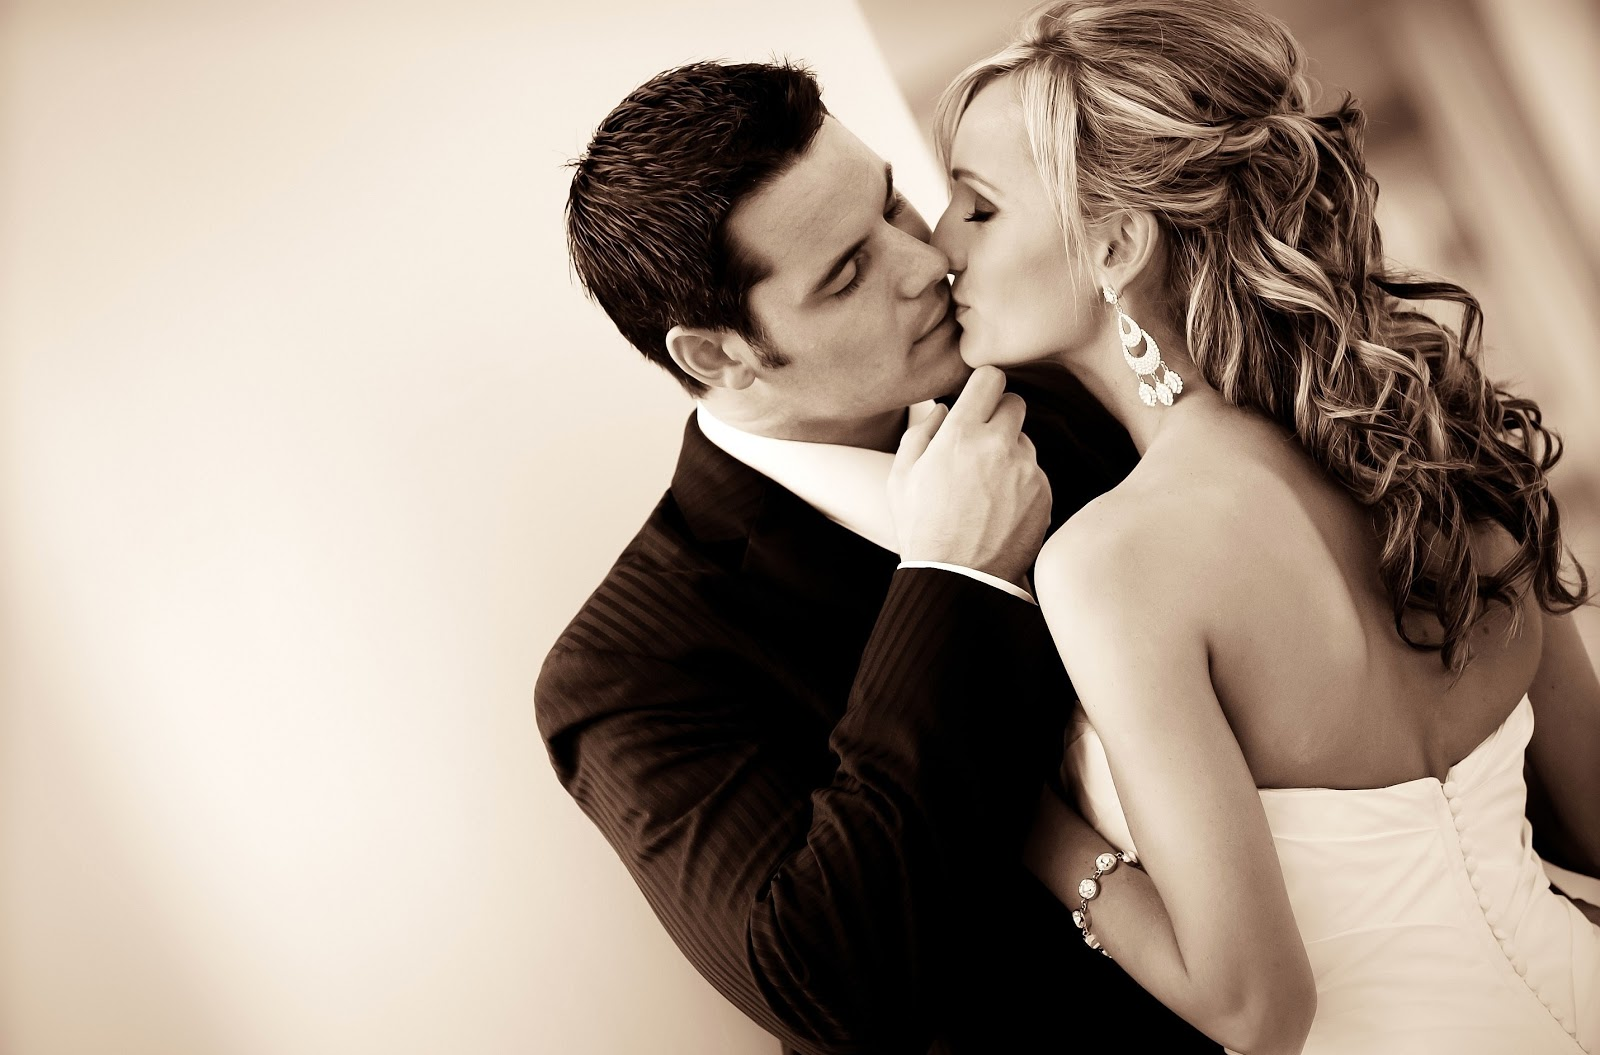 couple kissing wallpapers - photo #14